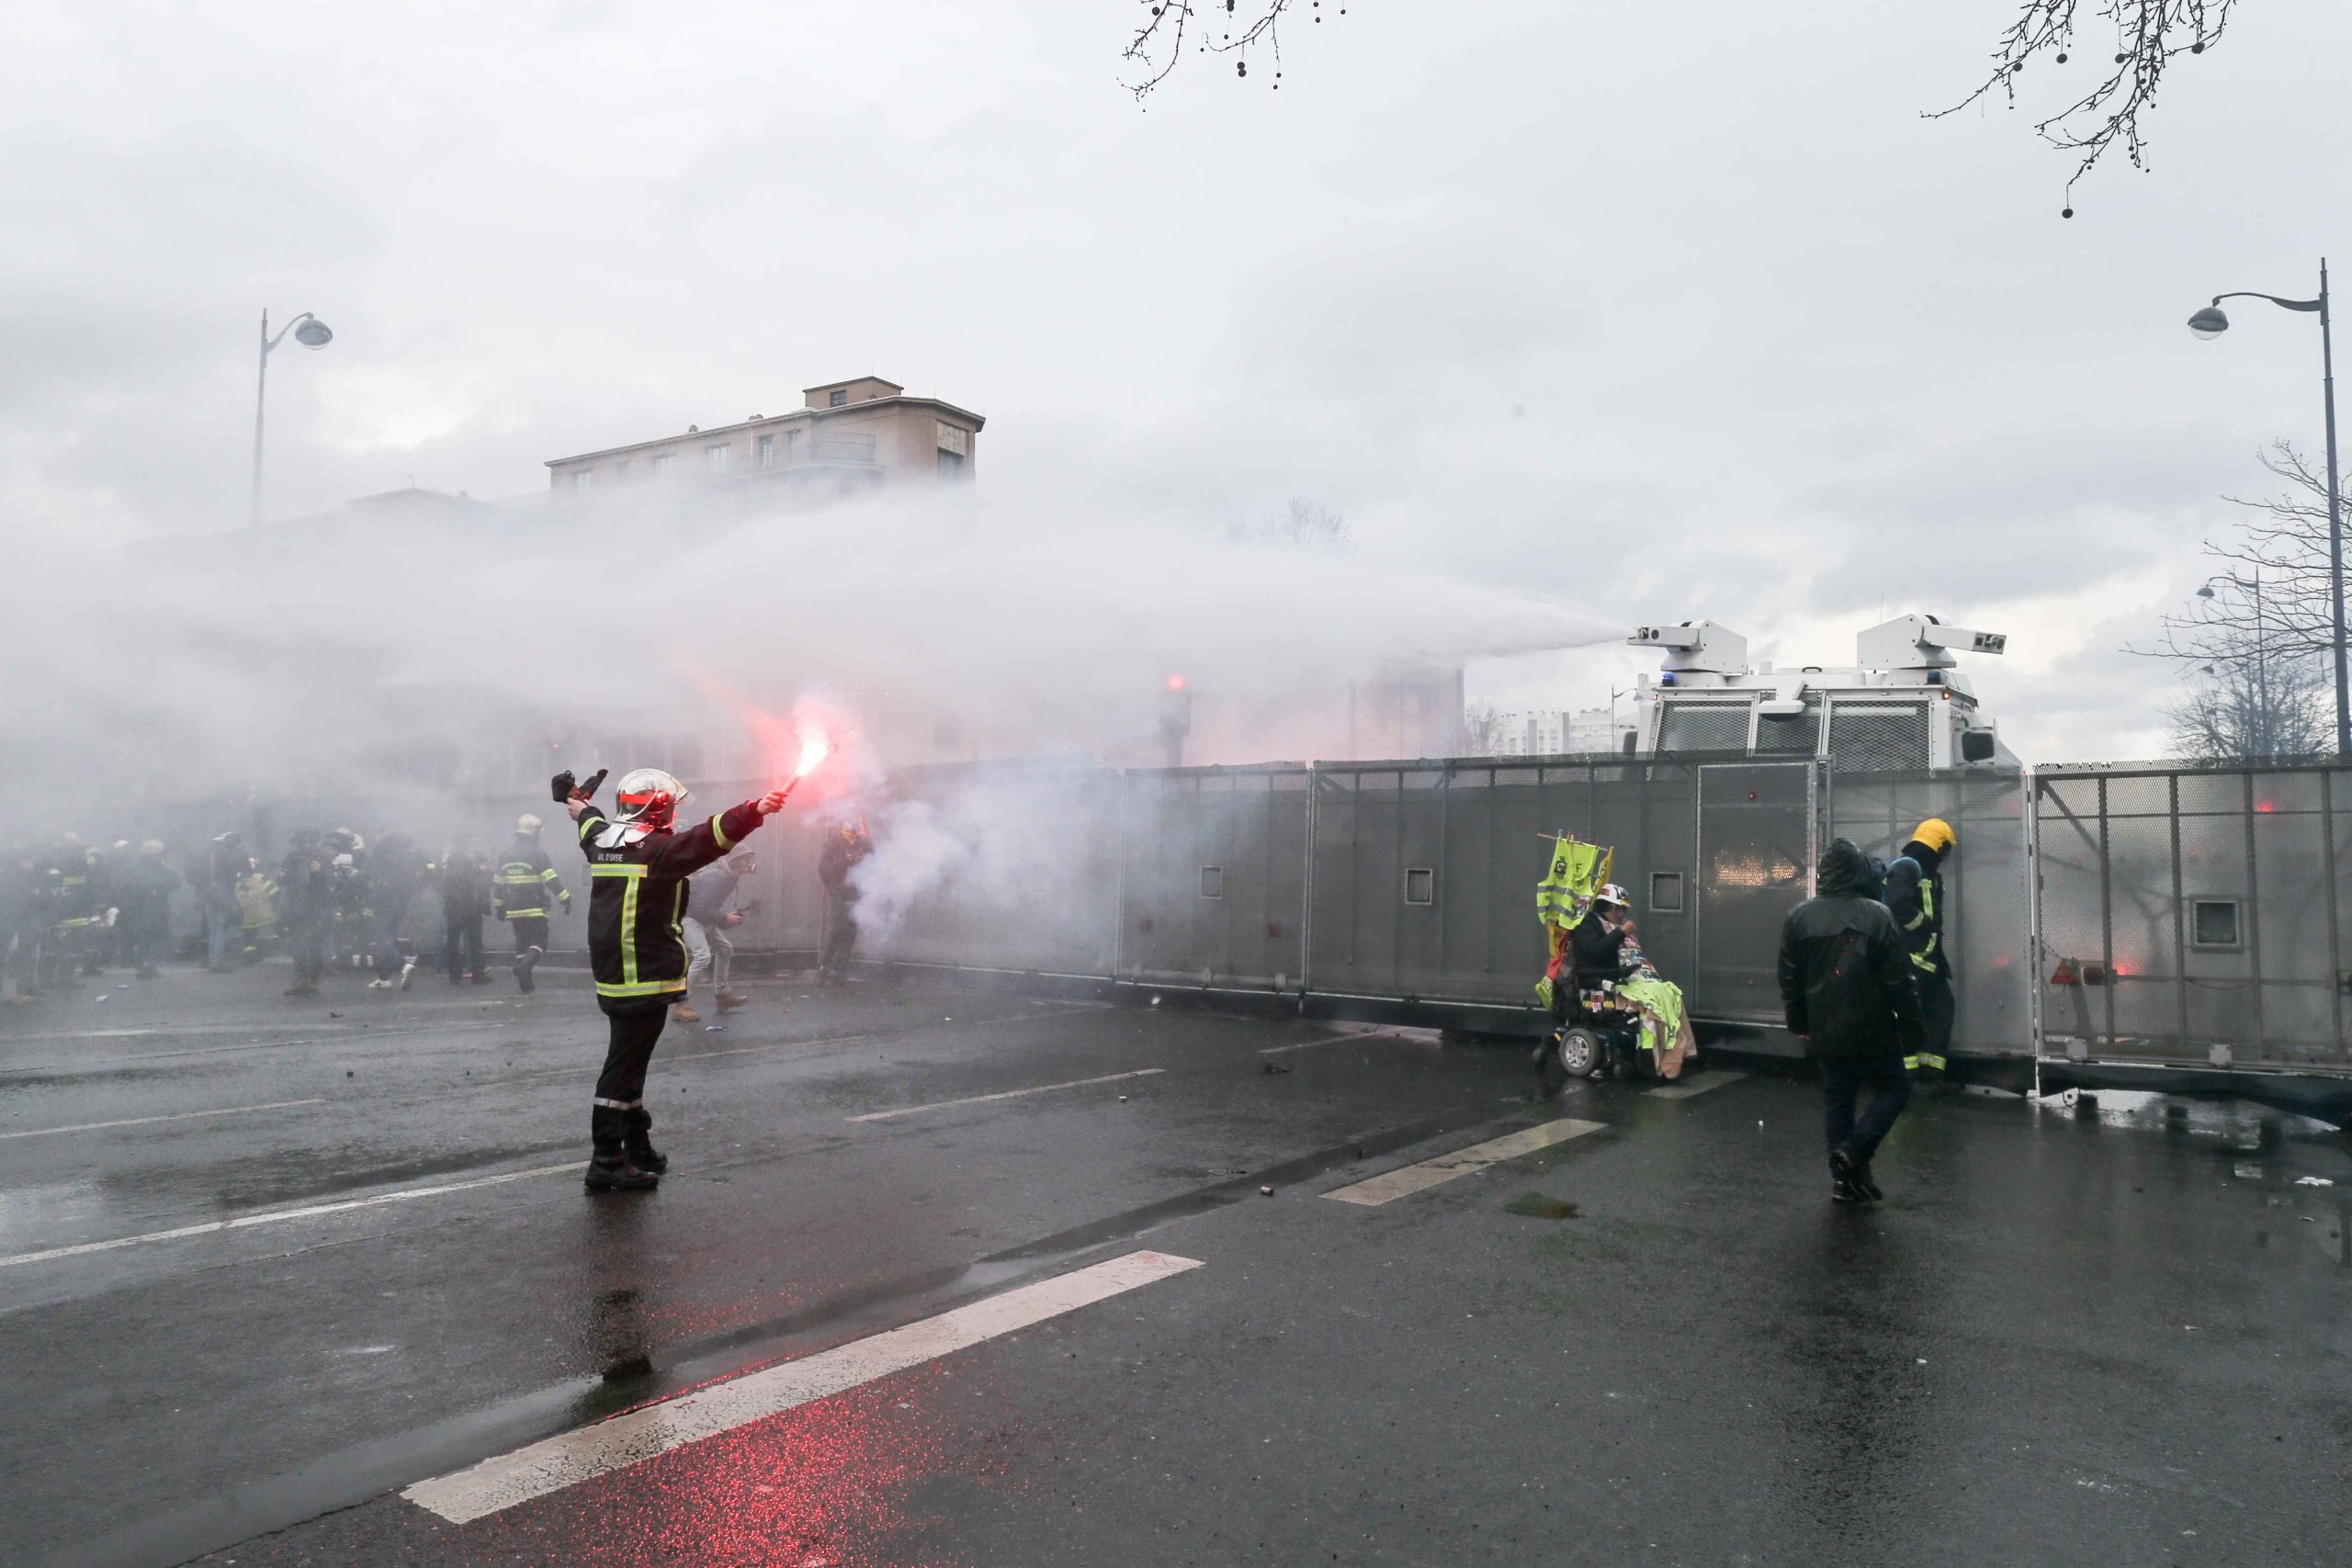 A firefighter stands in front of water canons during a demonstration to protest against French government's plan to overhaul the country's retirement system in Paris, on January 28, 2020.